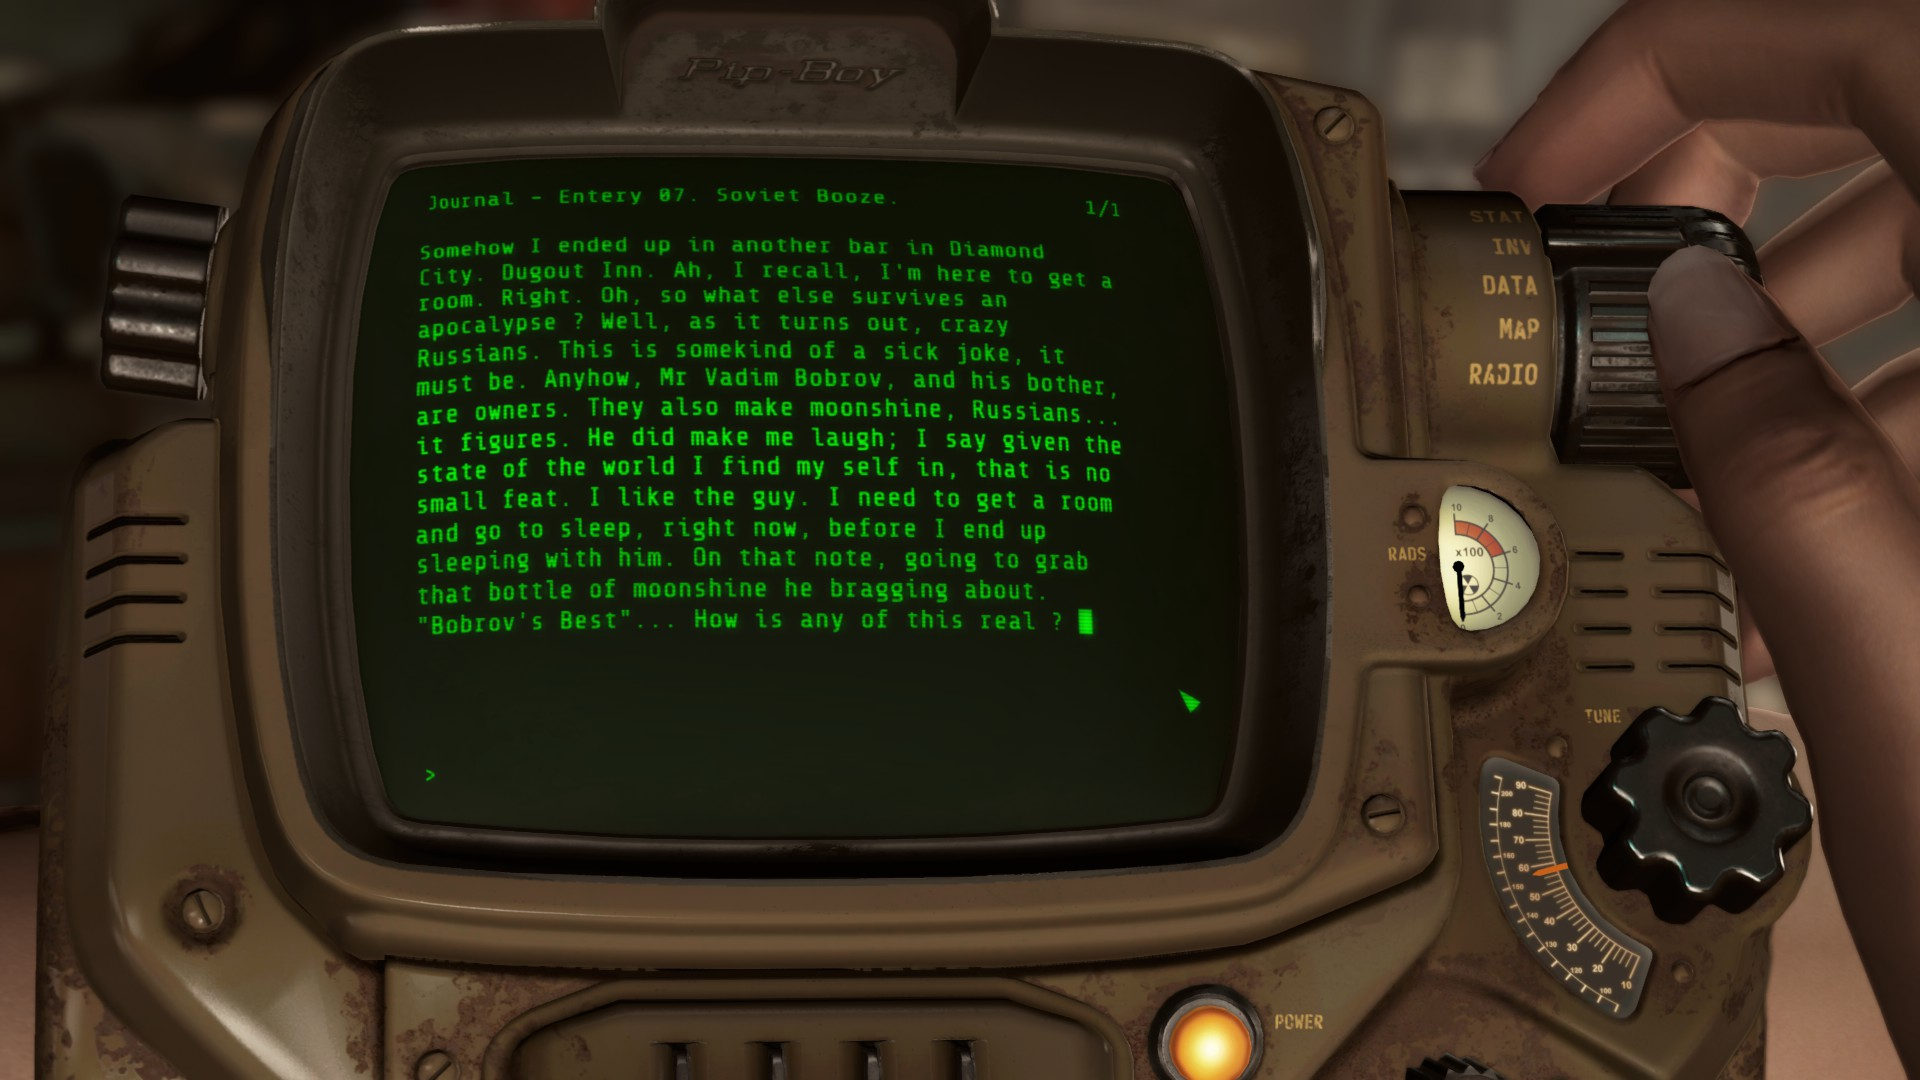 Fallout 76 - Character strategy - Your style  :: Fallout 4